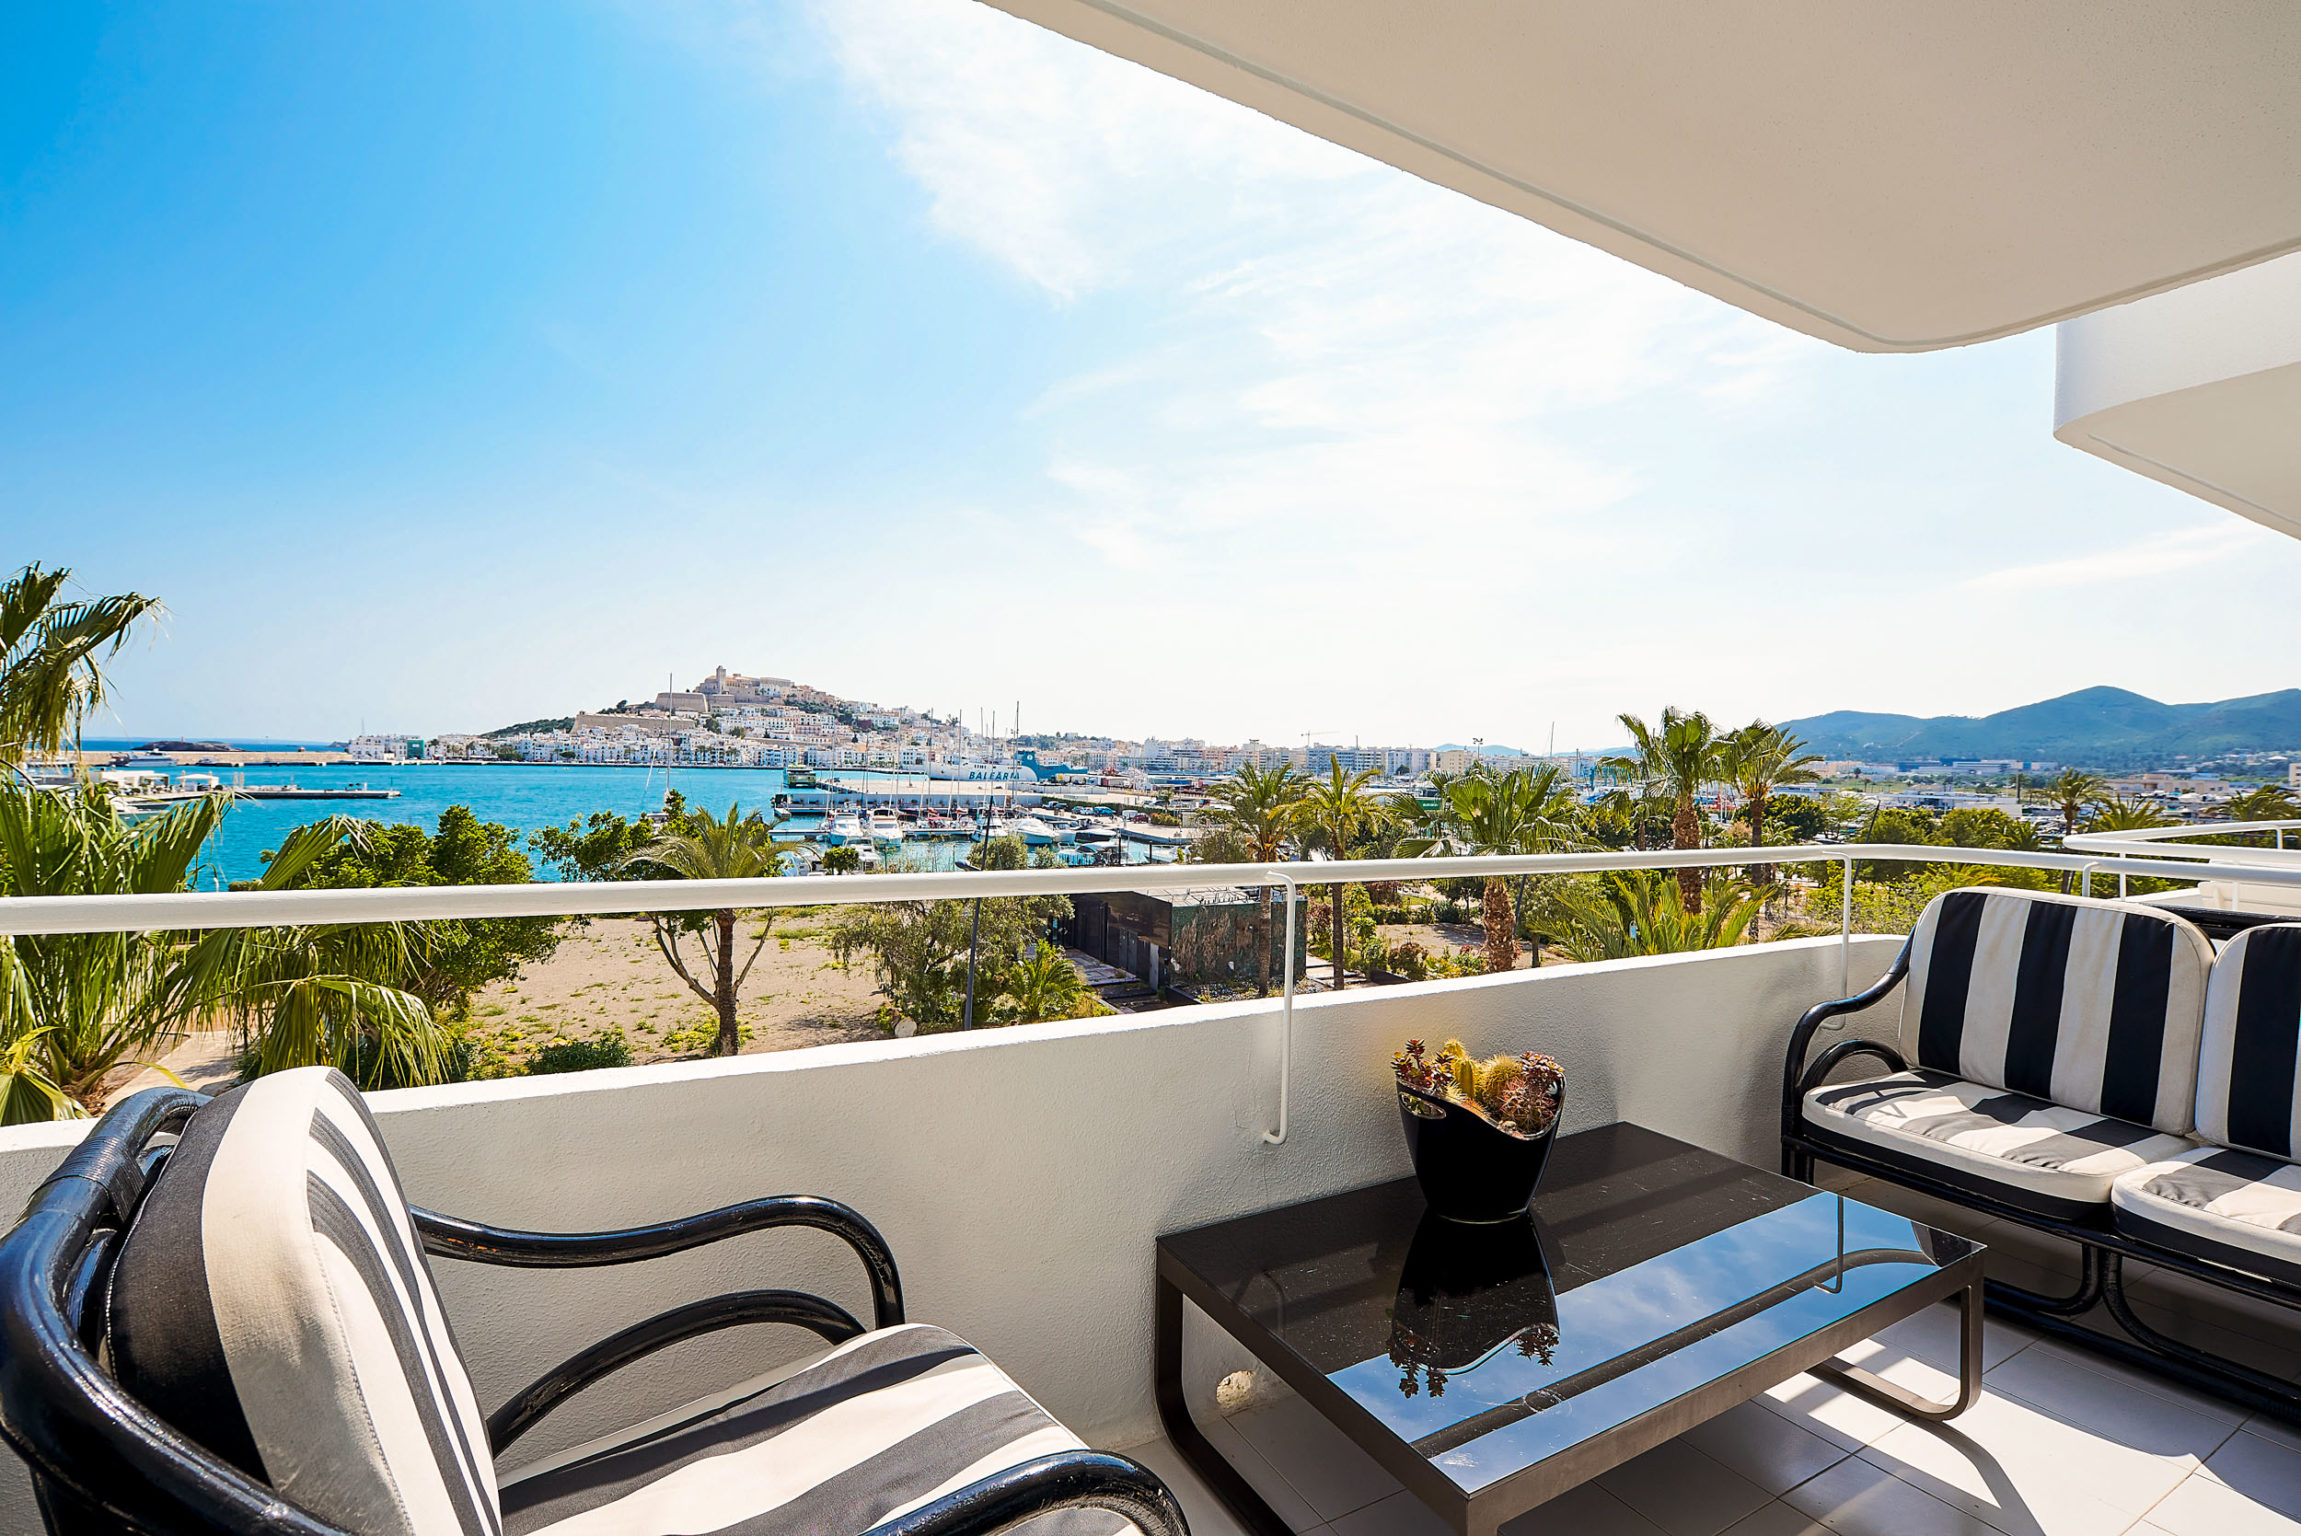 https://www.white-ibiza.com/wp-content/uploads/2020/03/white-ibiza-property-WI110-2020-03-2301x1536.jpg